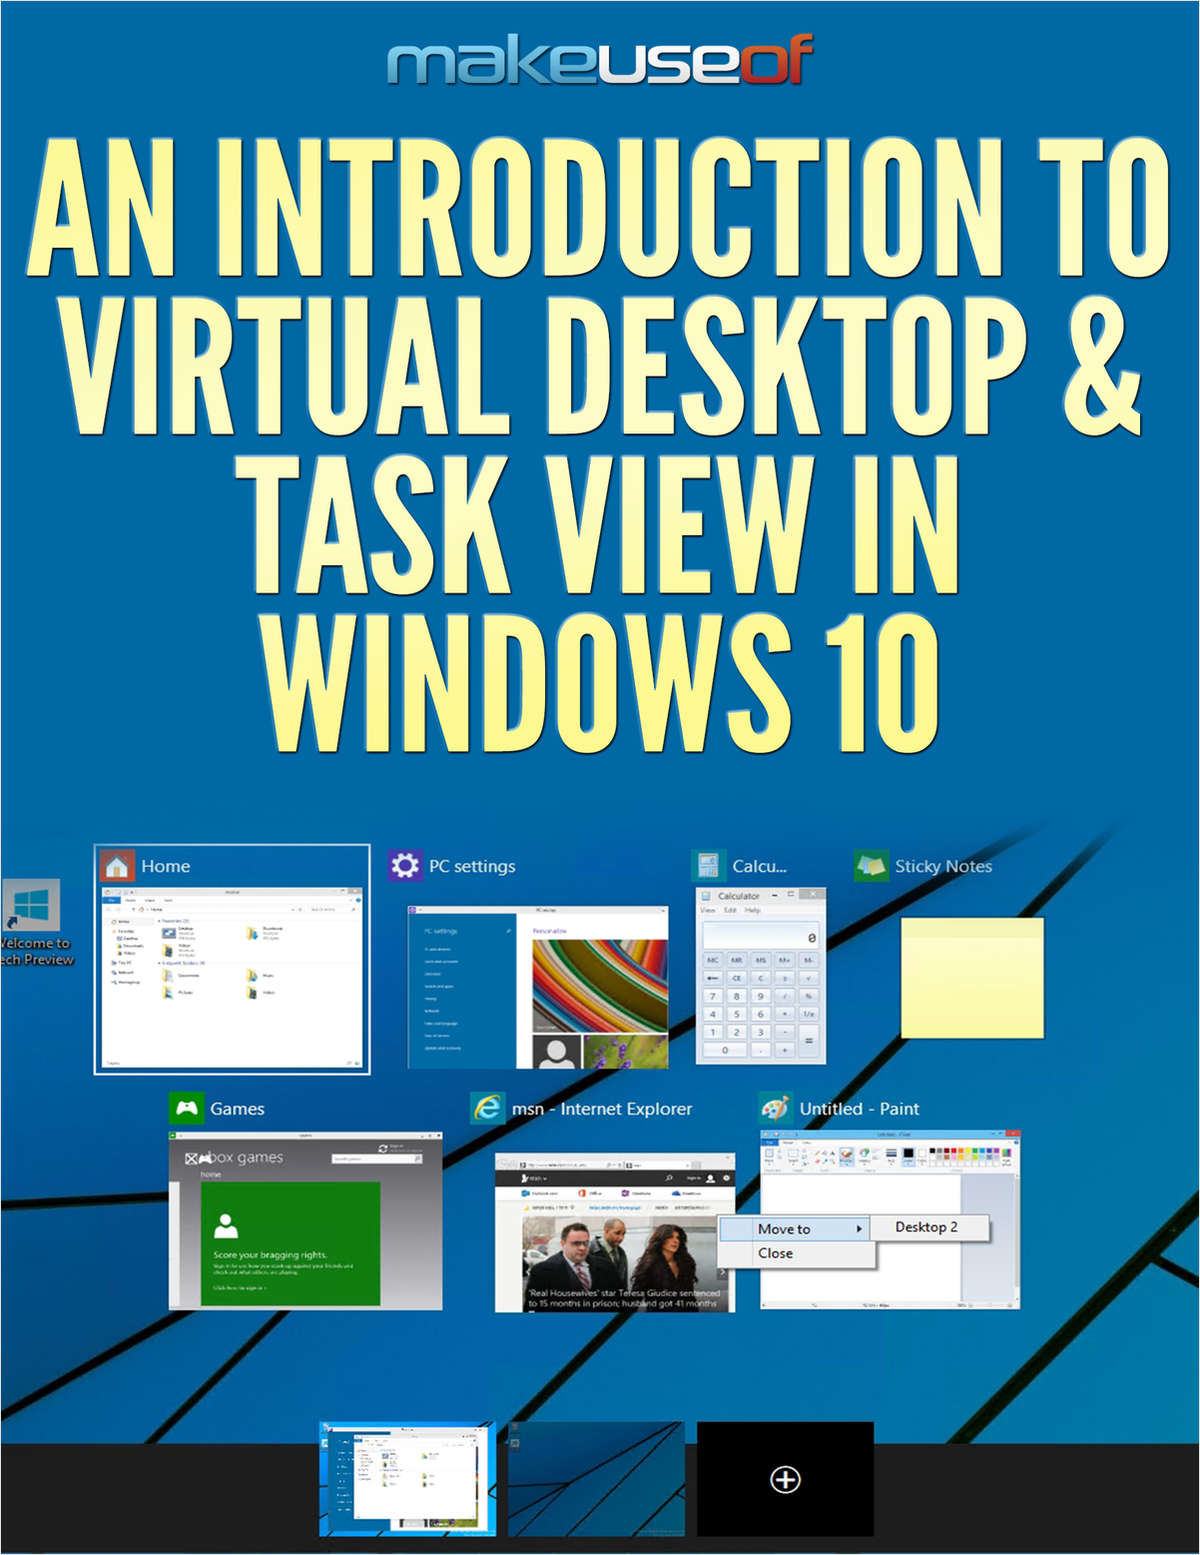 An Introduction to Virtual Desktop & Task View in Windows 10